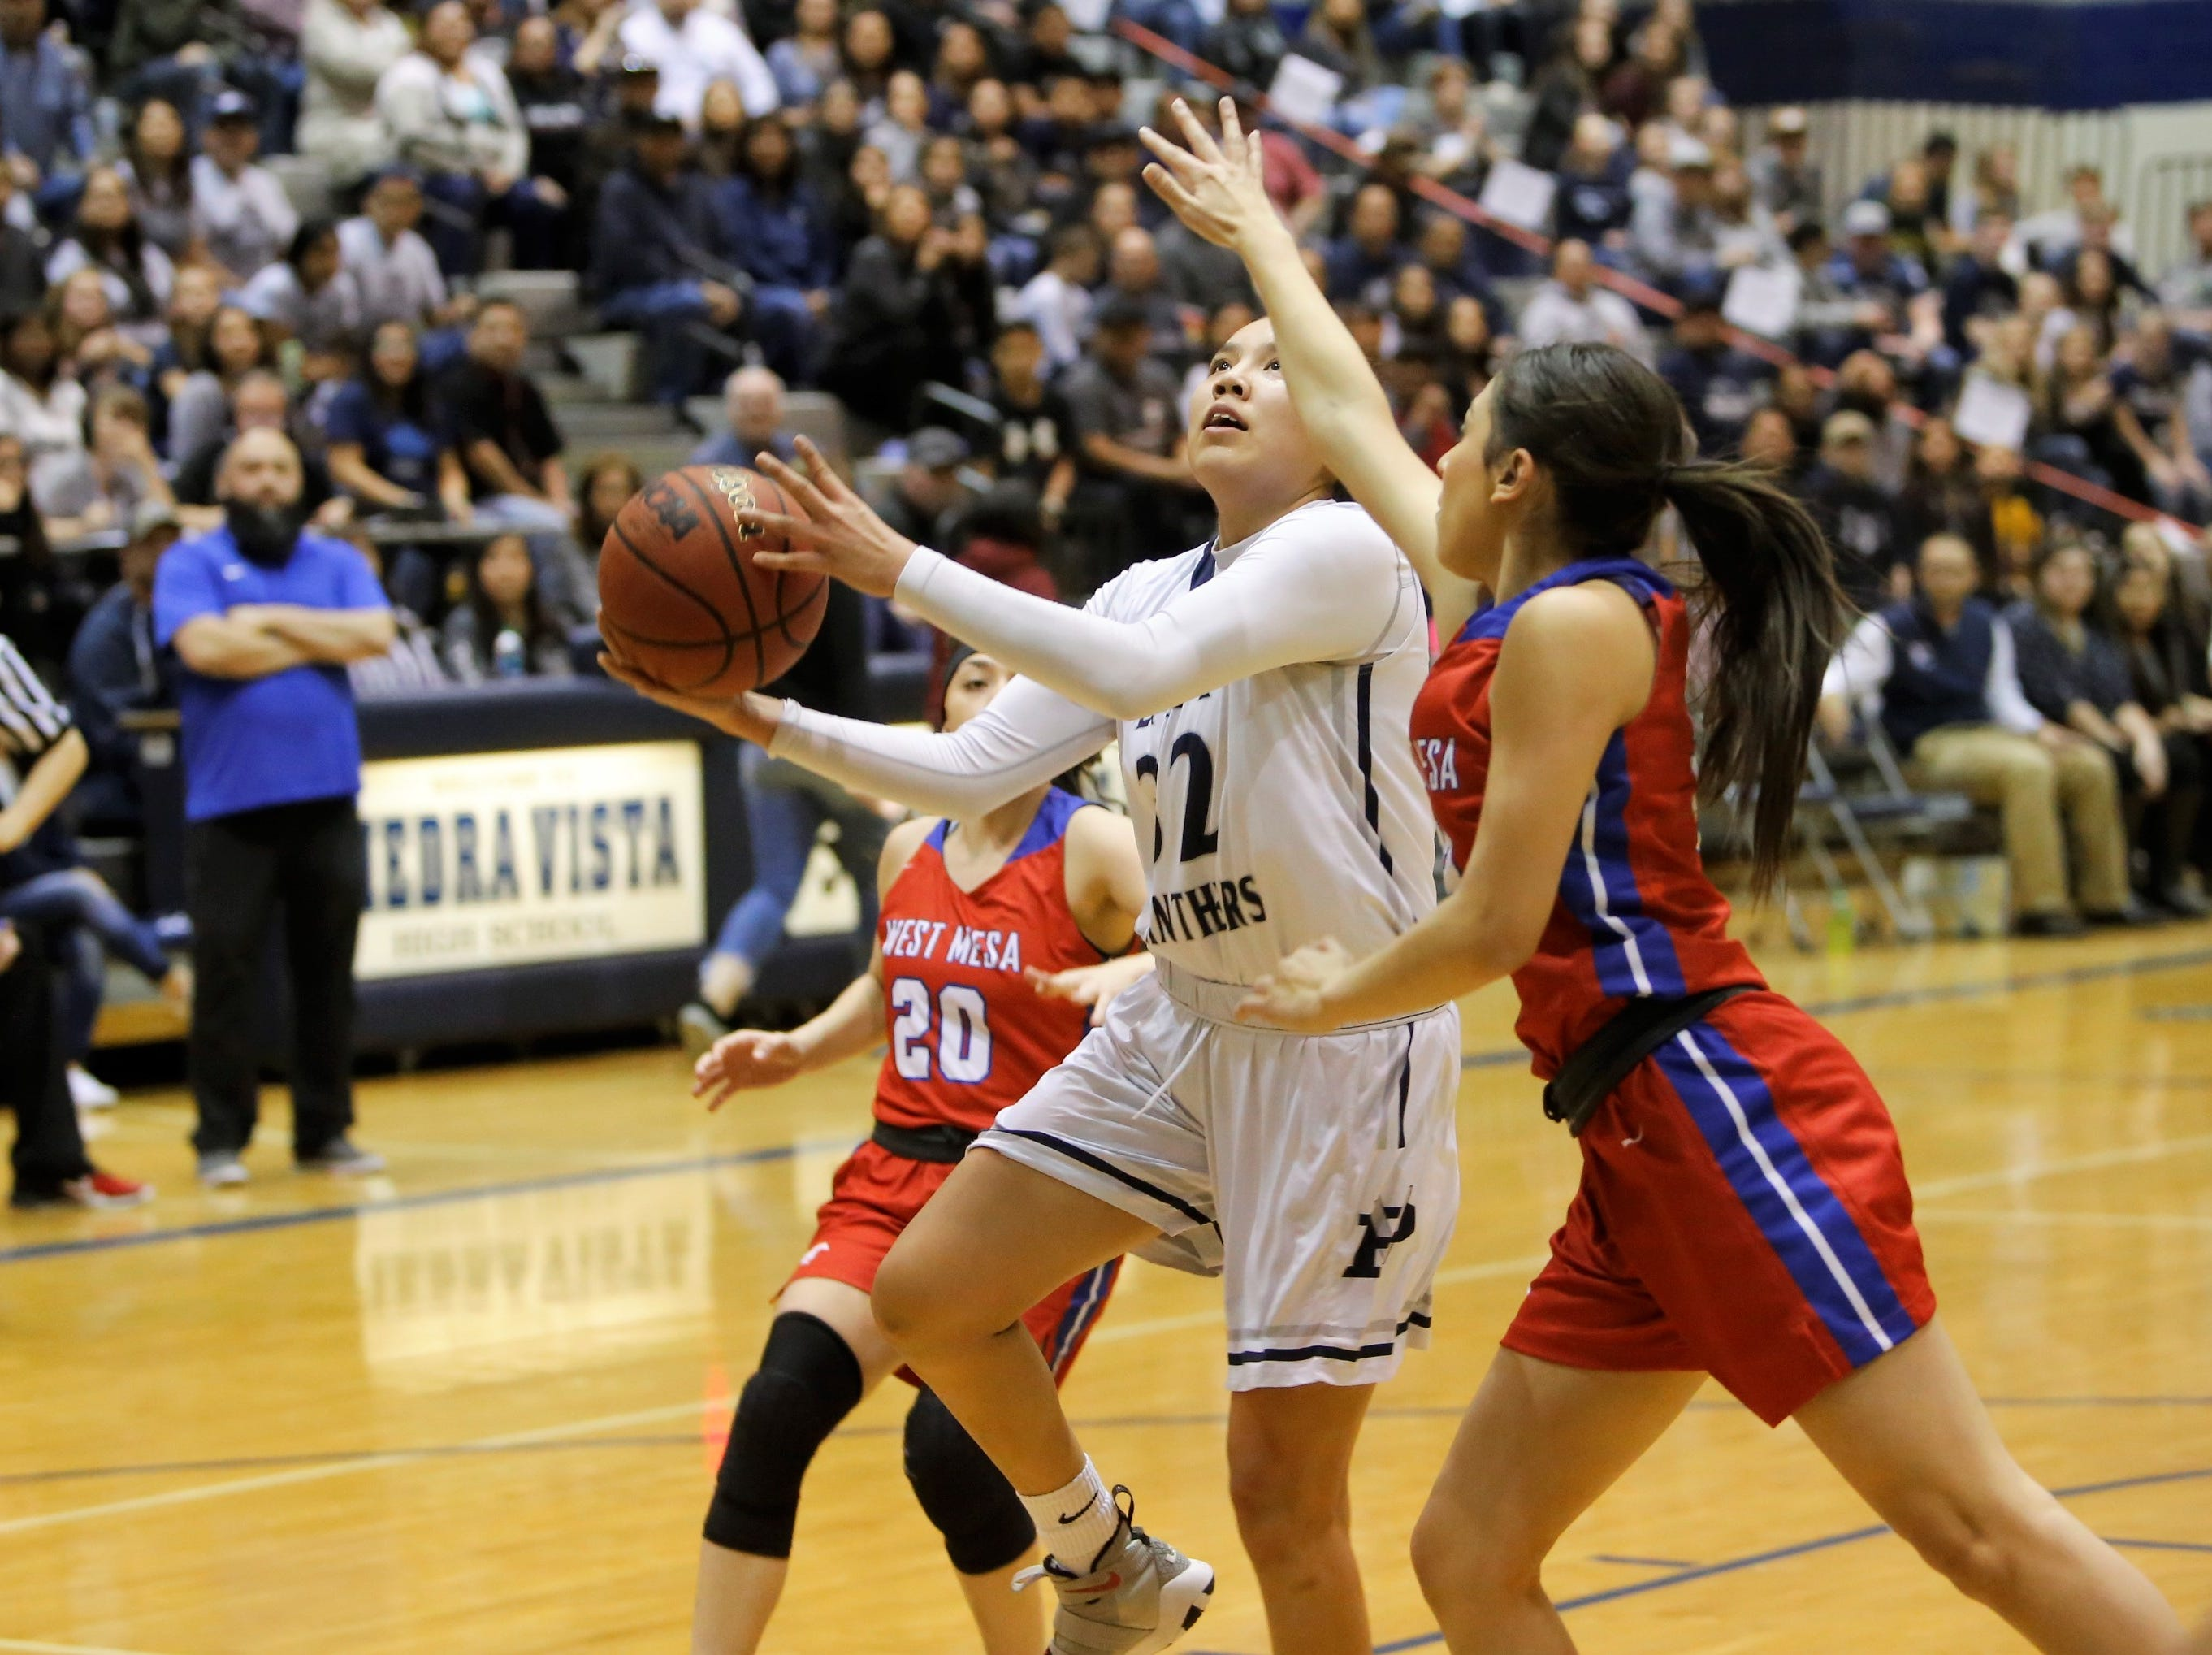 Piedra Vista's Lanae Billy drives to the basket for a fast-break layup against West Mesa's Jaden Castellano (23) during Saturday's District 2-5A tournament championship game at Jerry A. Conner Fieldhouse in Farmington.